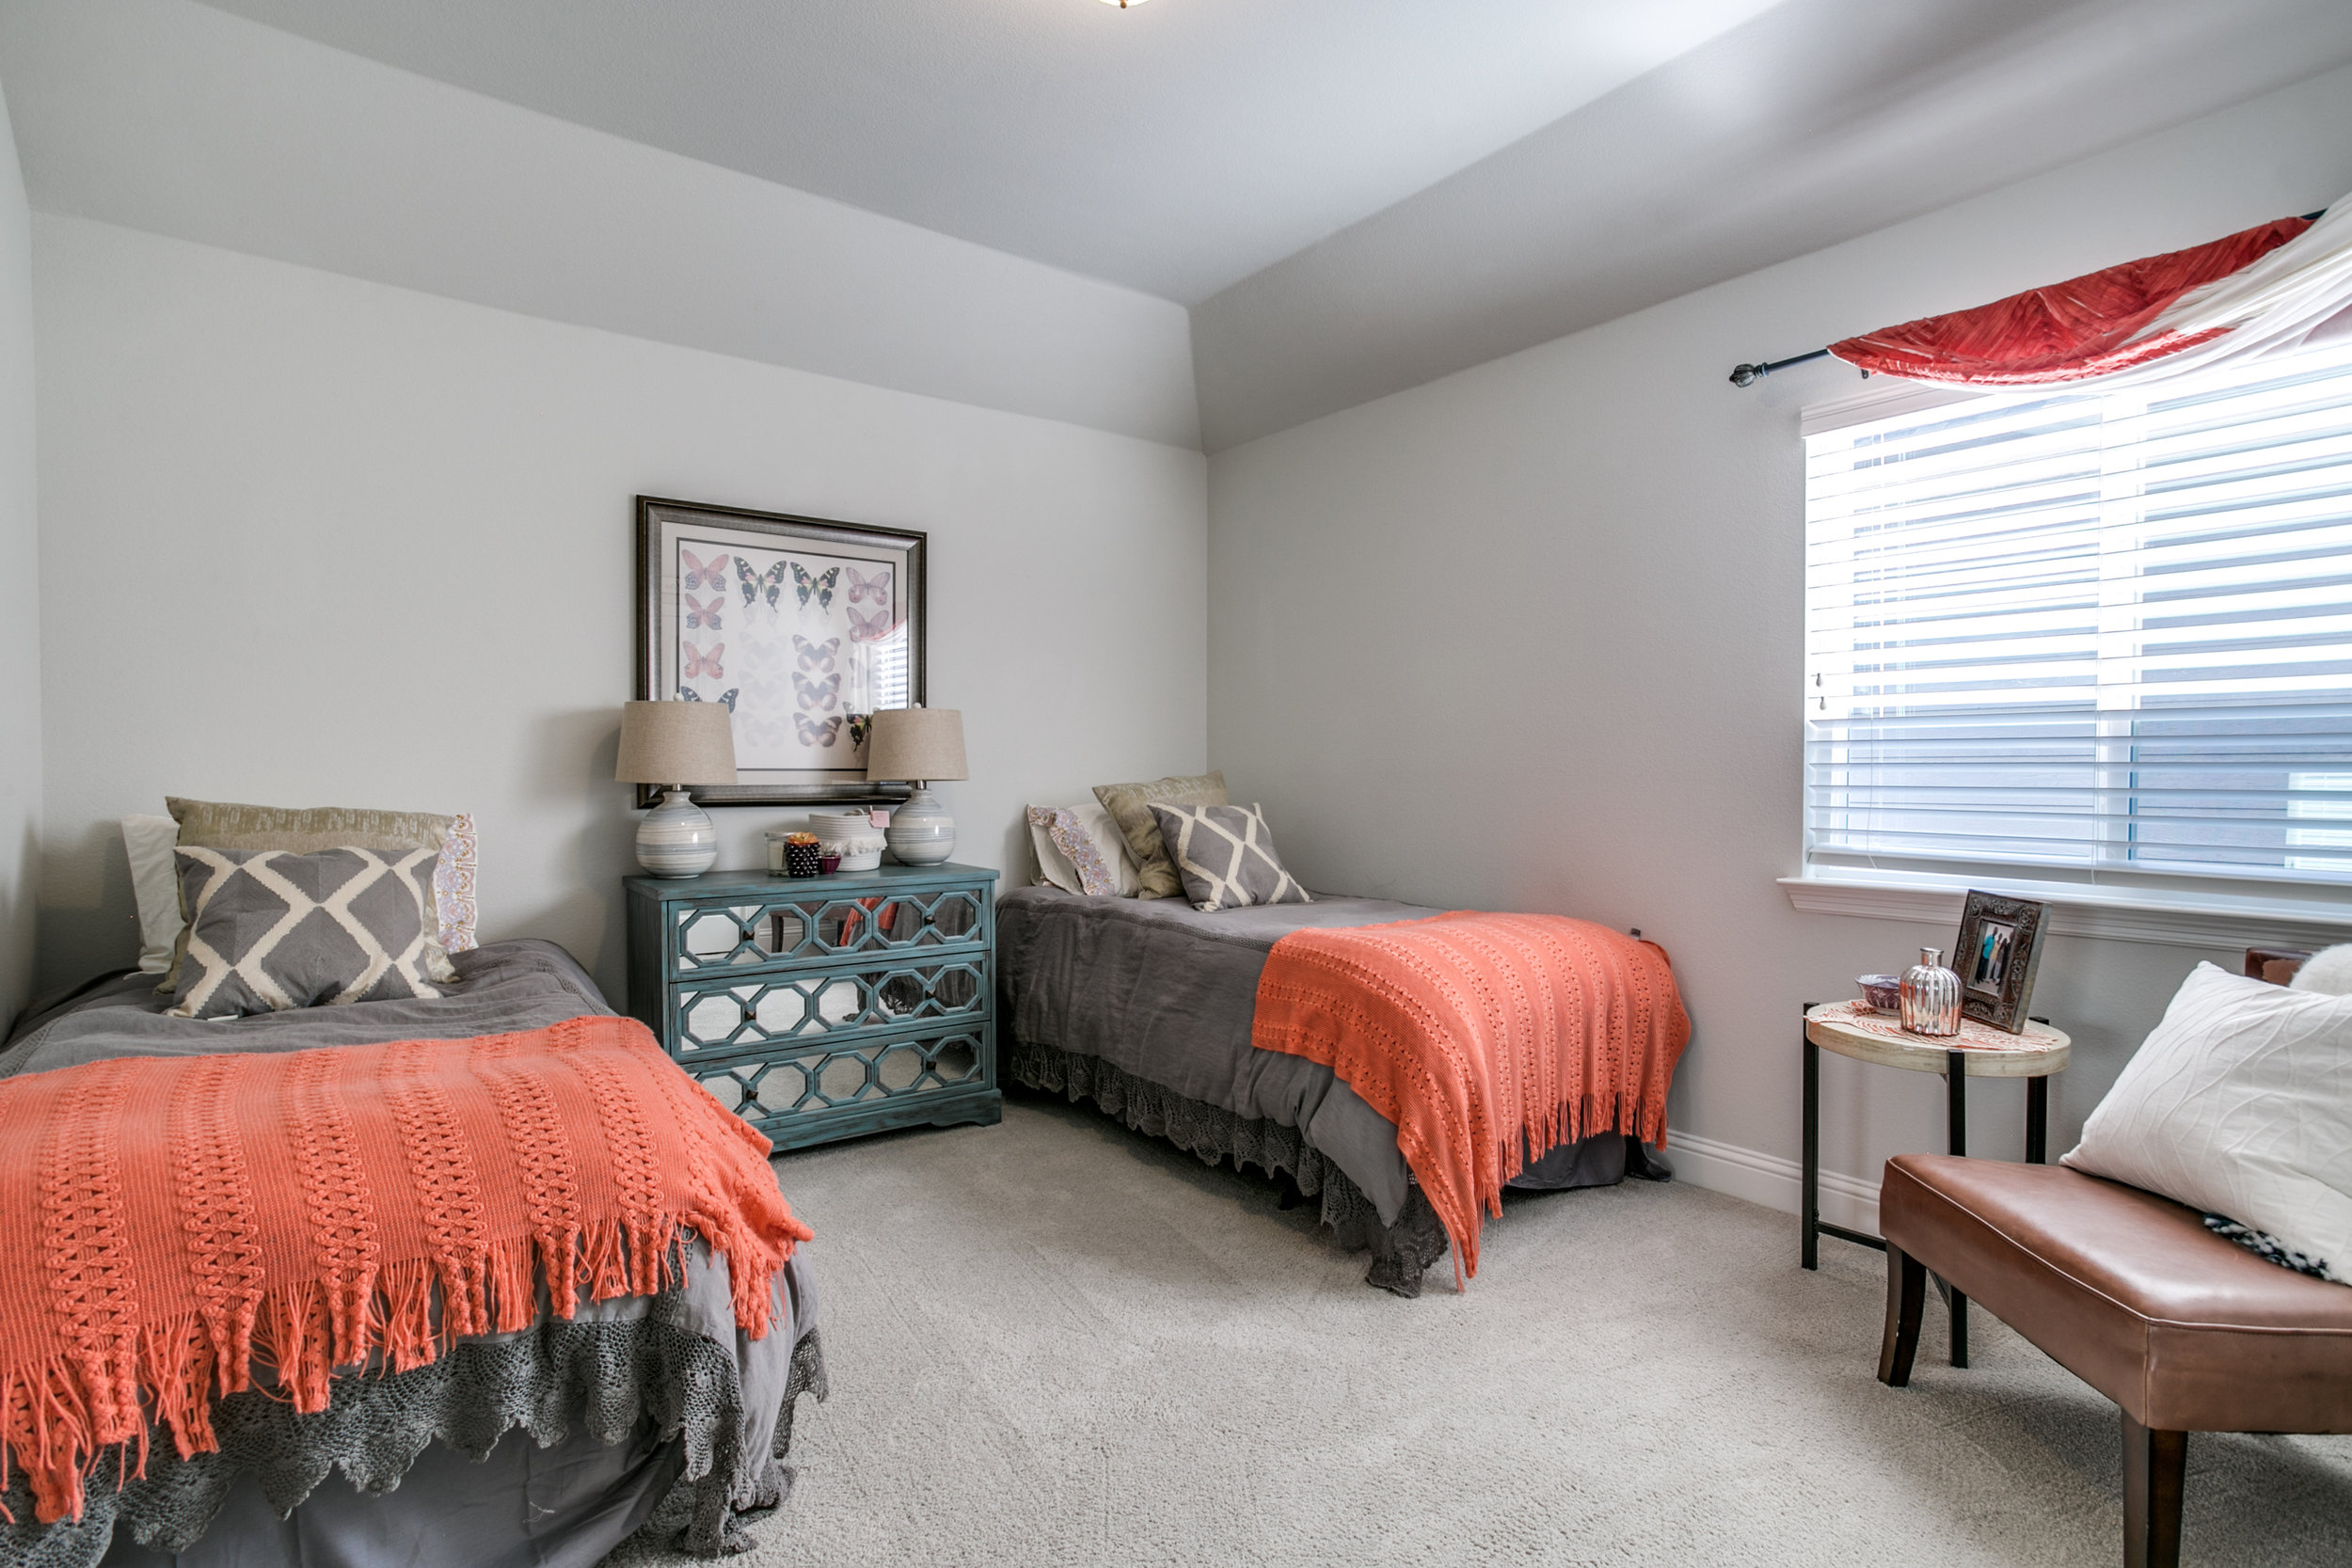 465-travis-st-coppell-tx-High-Res-28.jpg